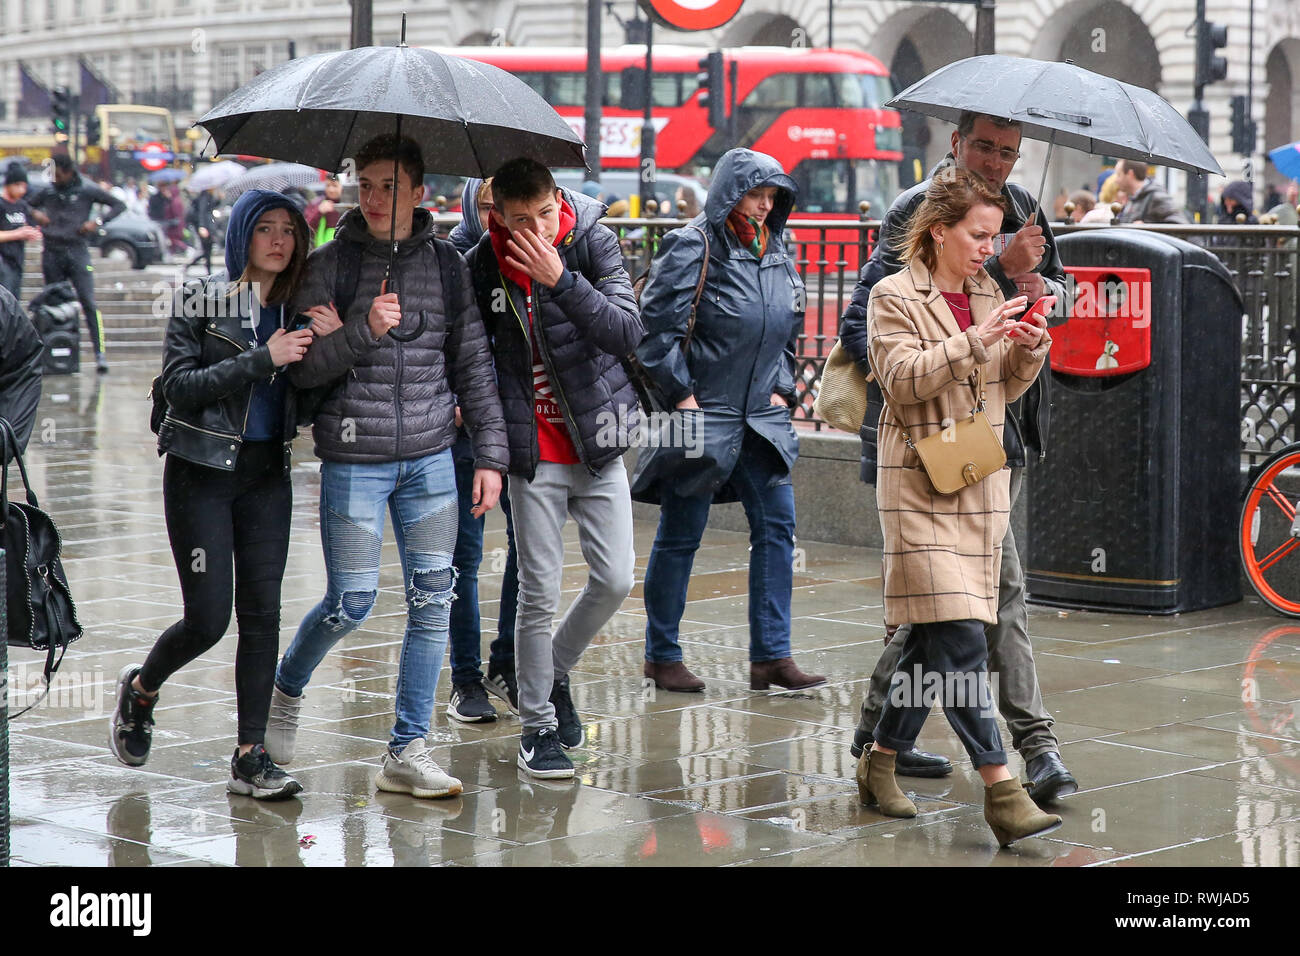 London, UK. 6th Mar, 2019. Tourists shelter from the rain beneath umbrellas as it starts raining in the capital. Credit: Dinendra Haria/Alamy Live News Stock Photo